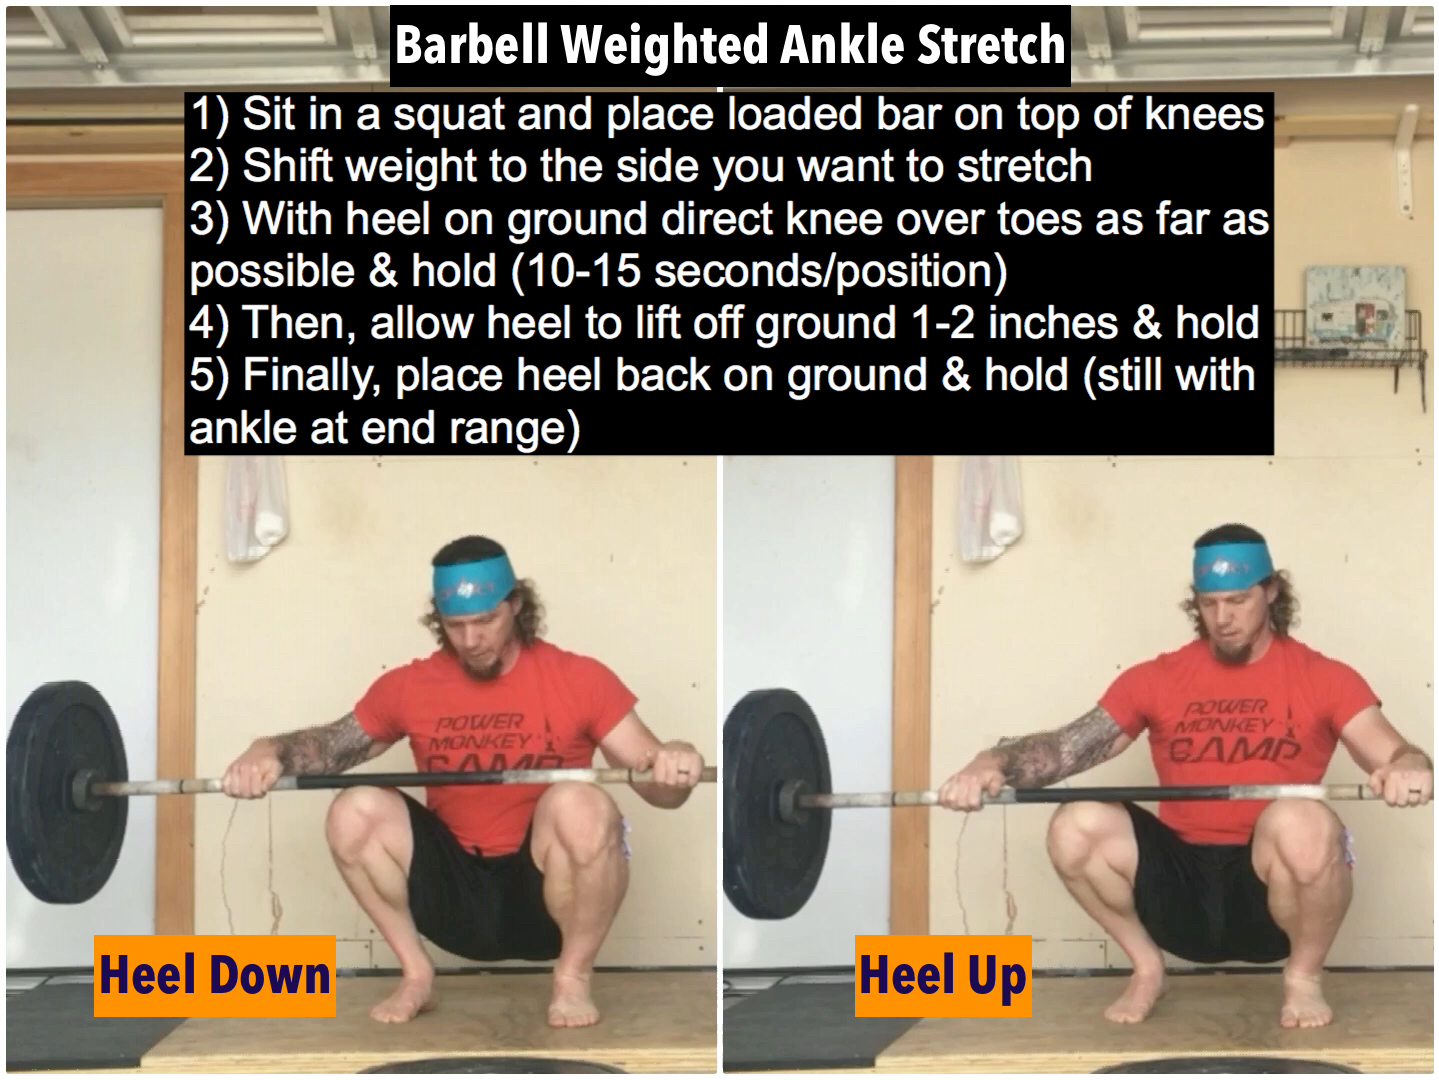 BarbellWeightedAnkleStretch3.jpeg